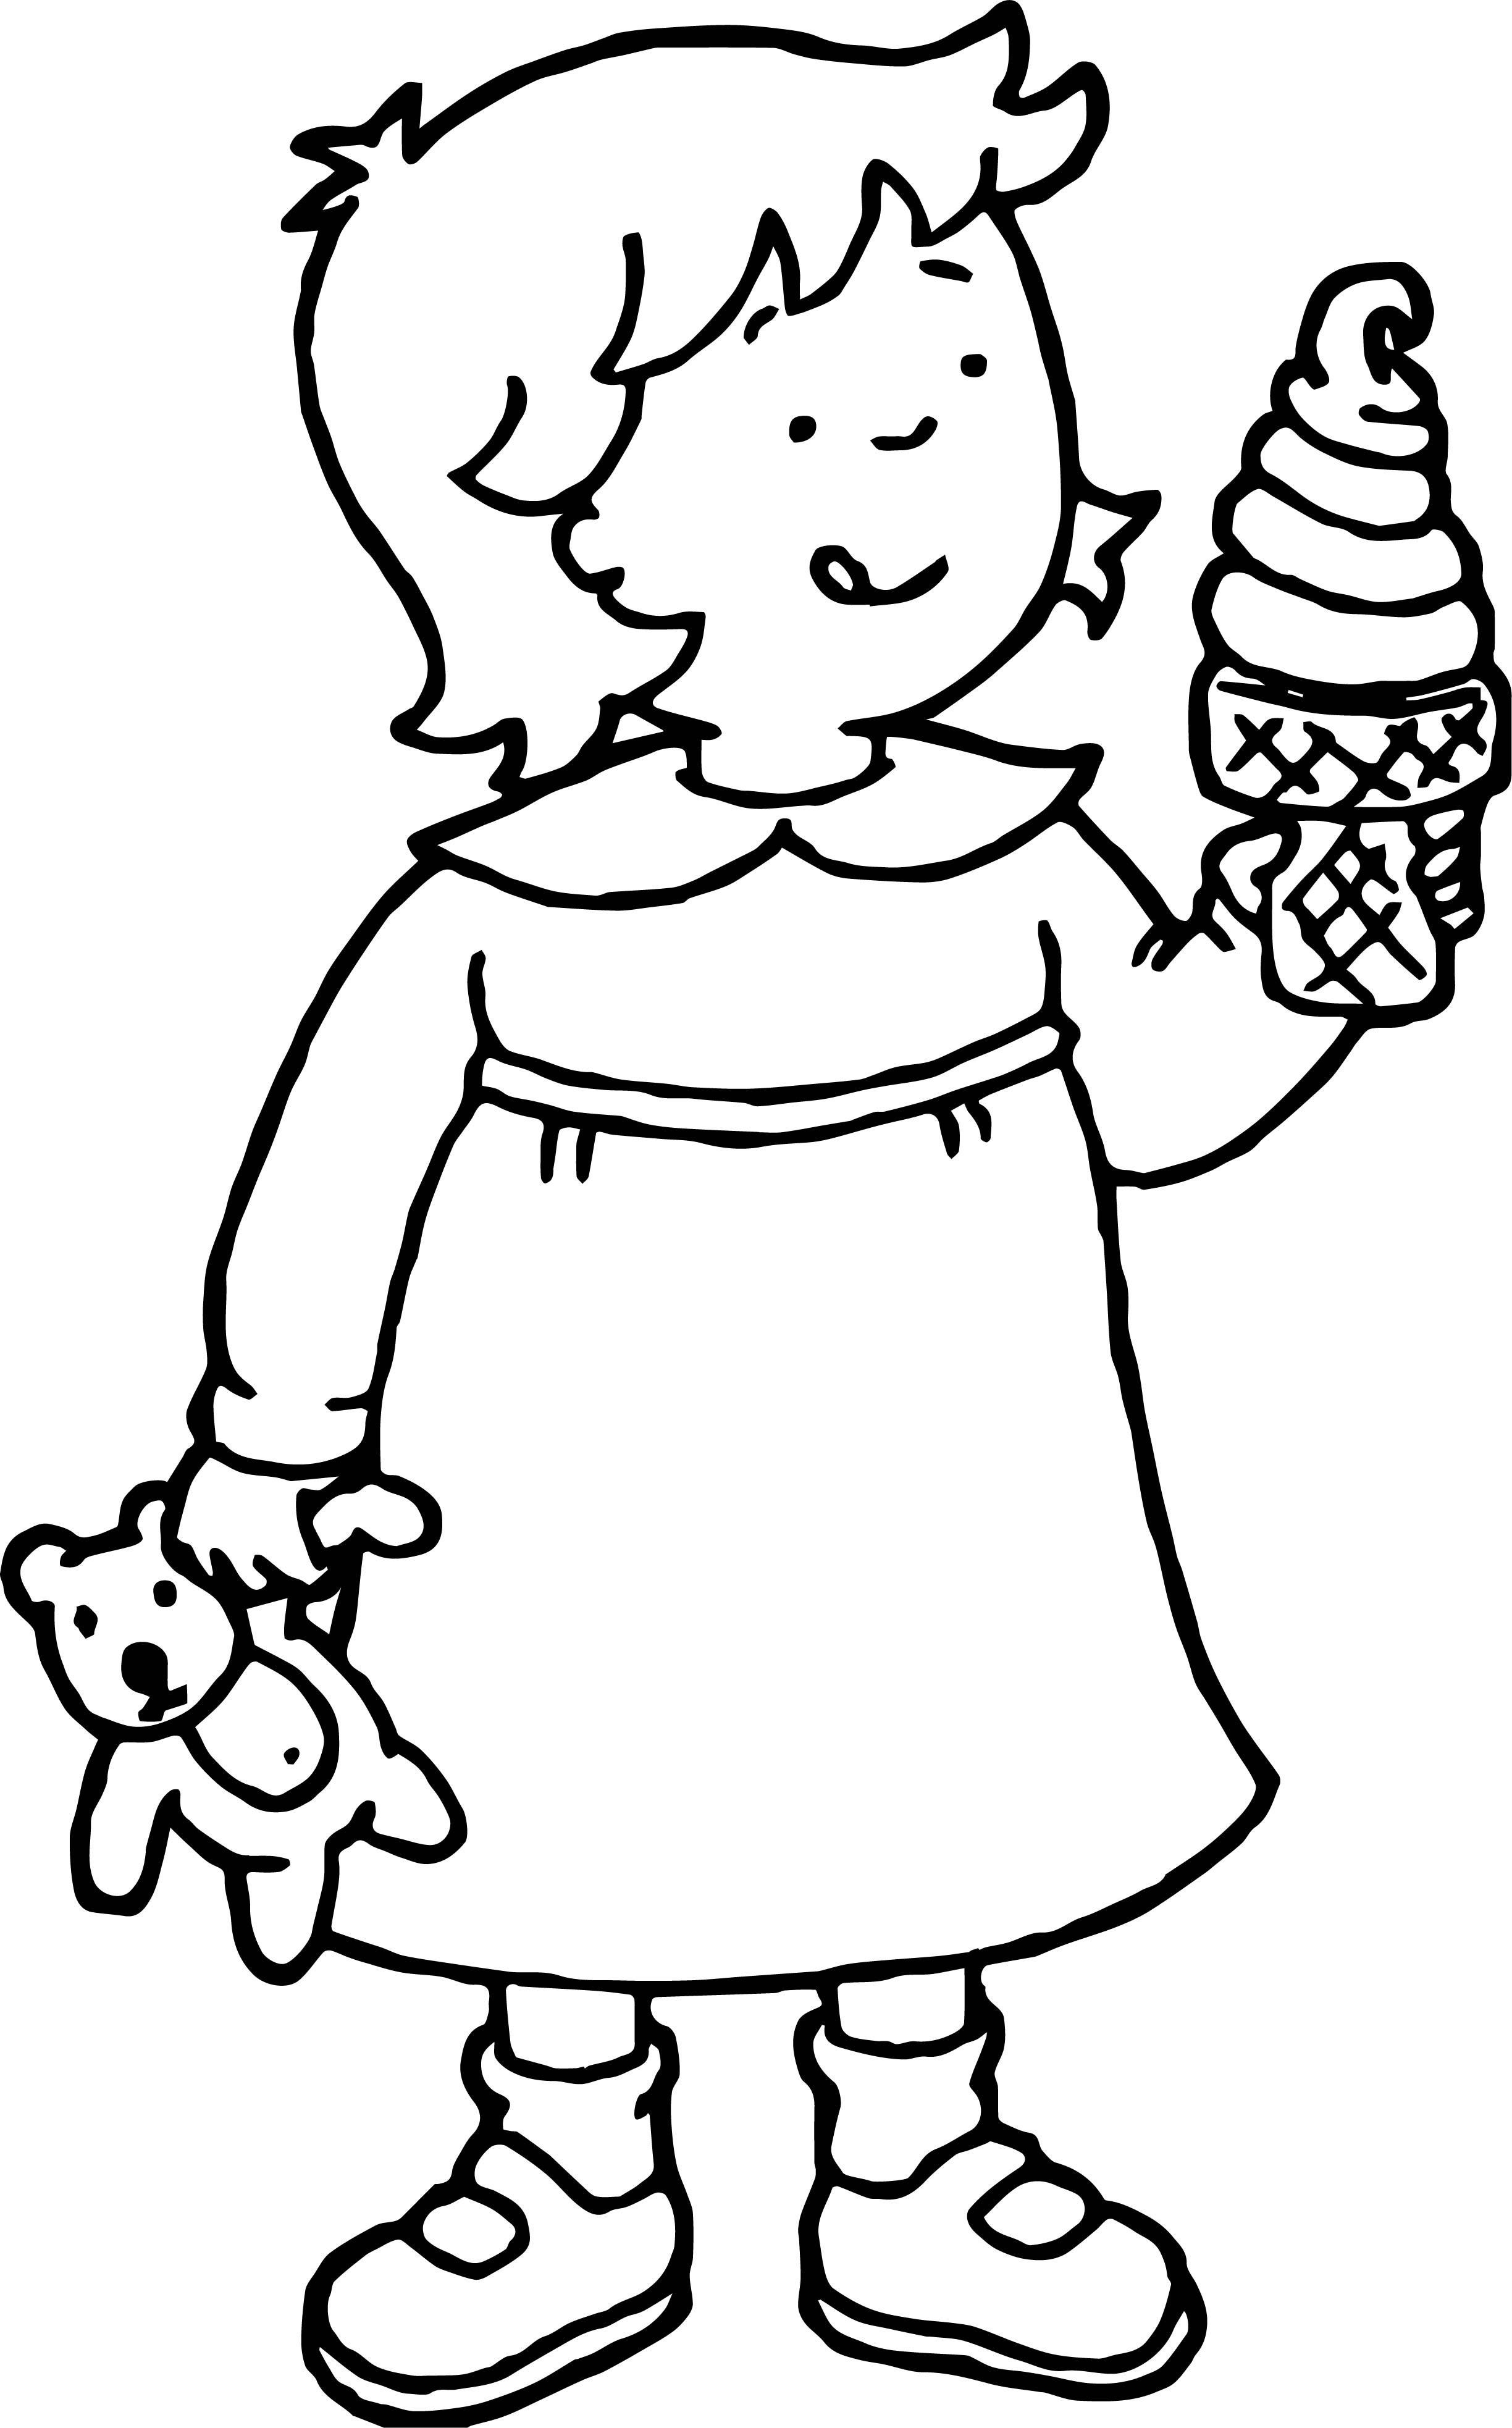 Caillou Coloring Page WeColoringPage 051